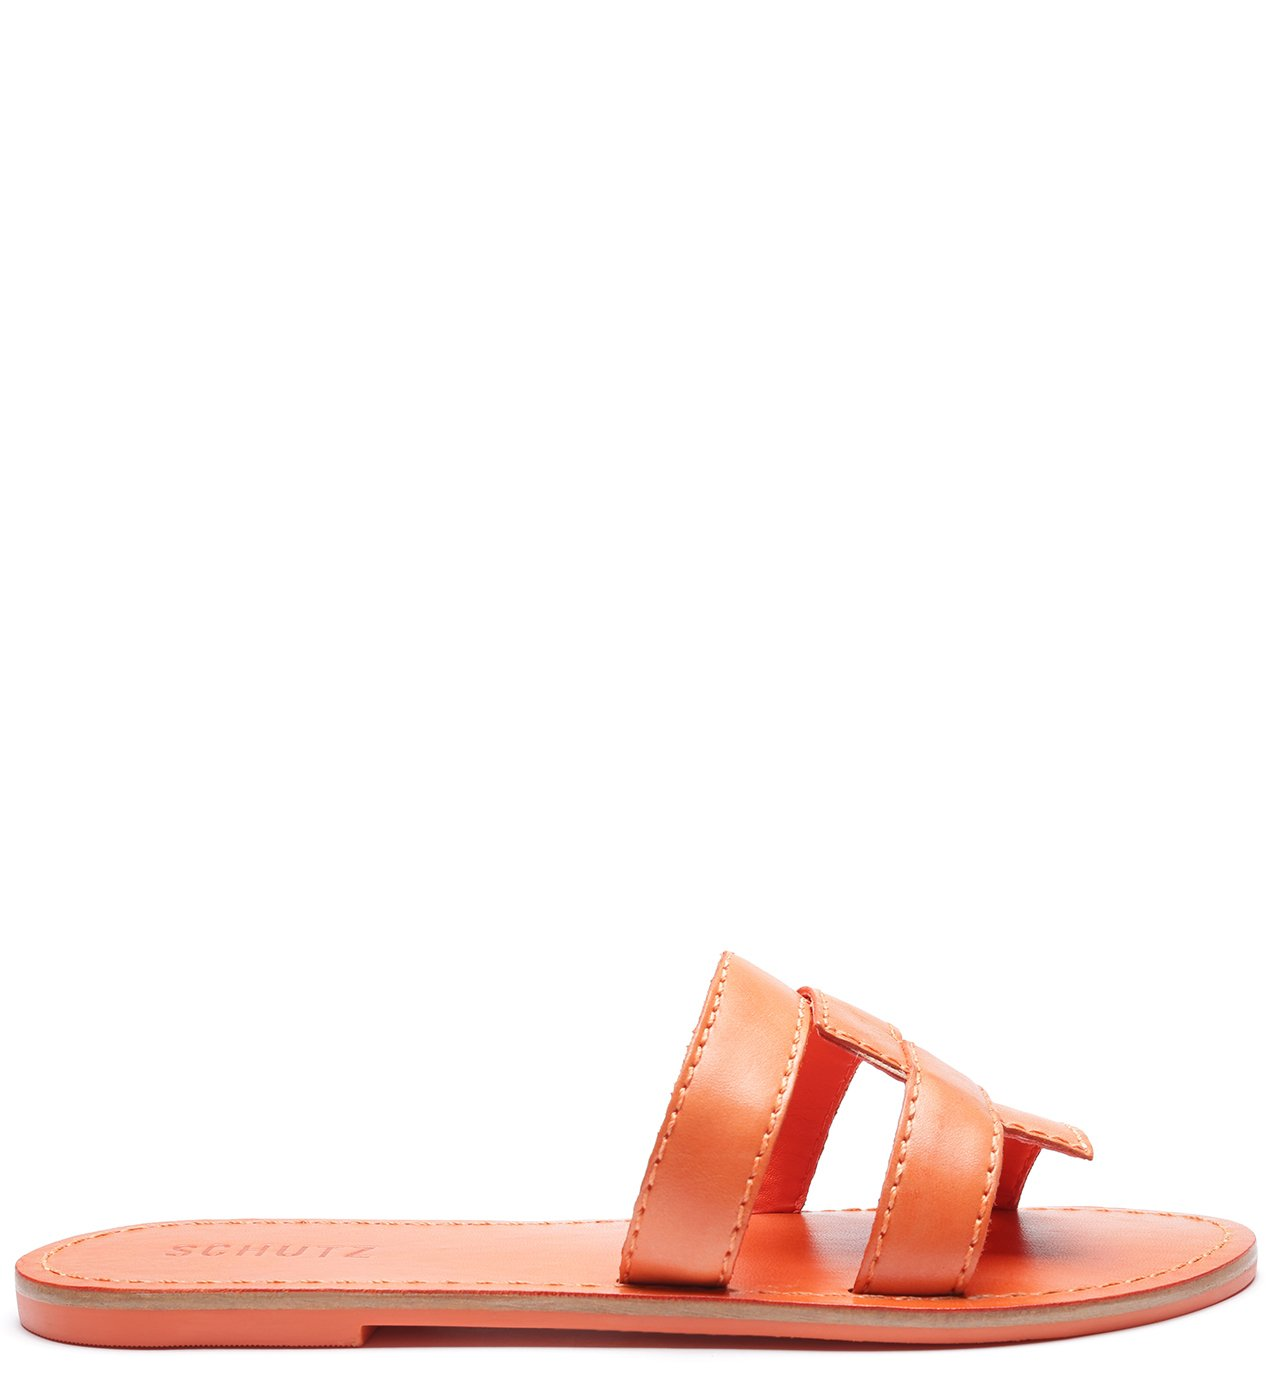 Slide New Straps Orange | Schutz